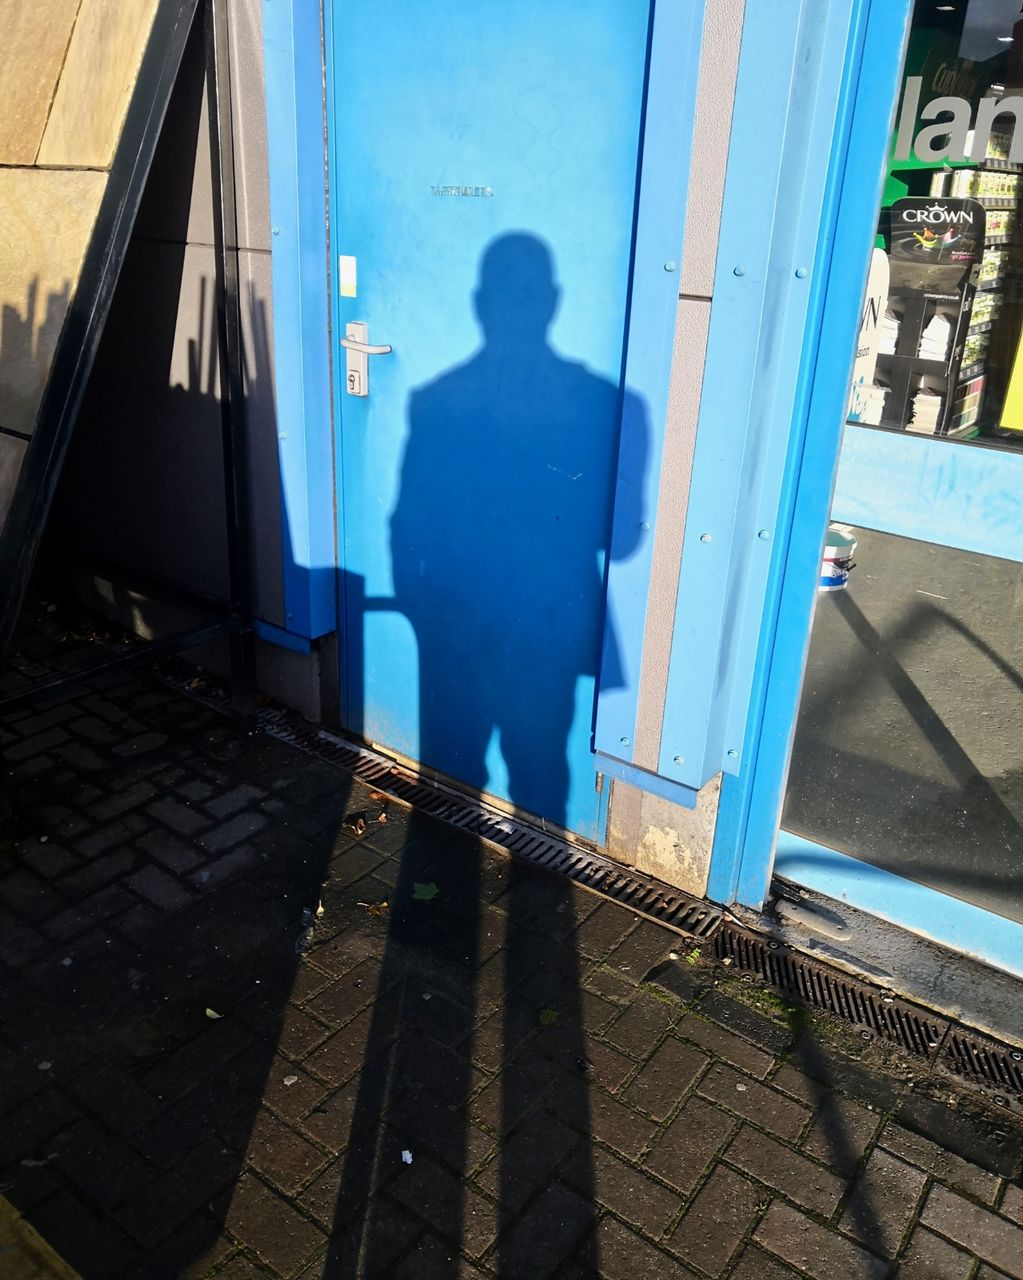 Self Portrait on Blue Door II 2019